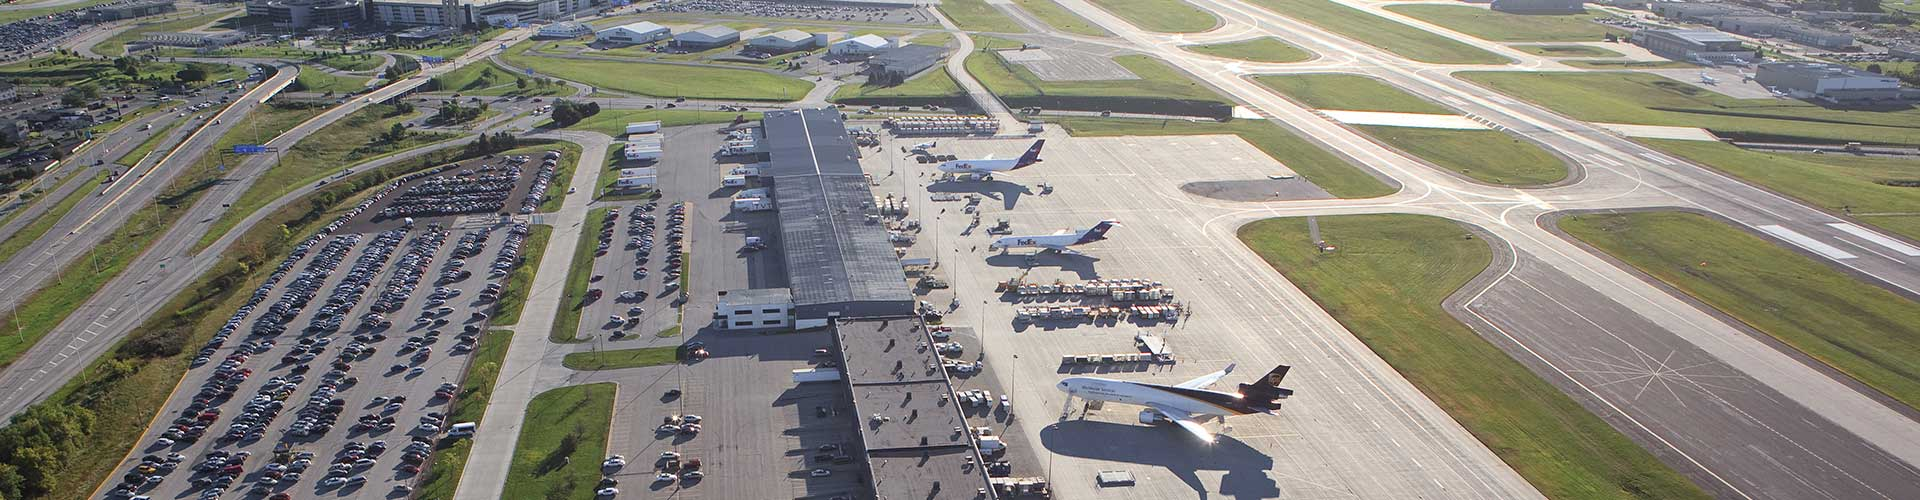 Aerial view of cargo planes at MKE airport